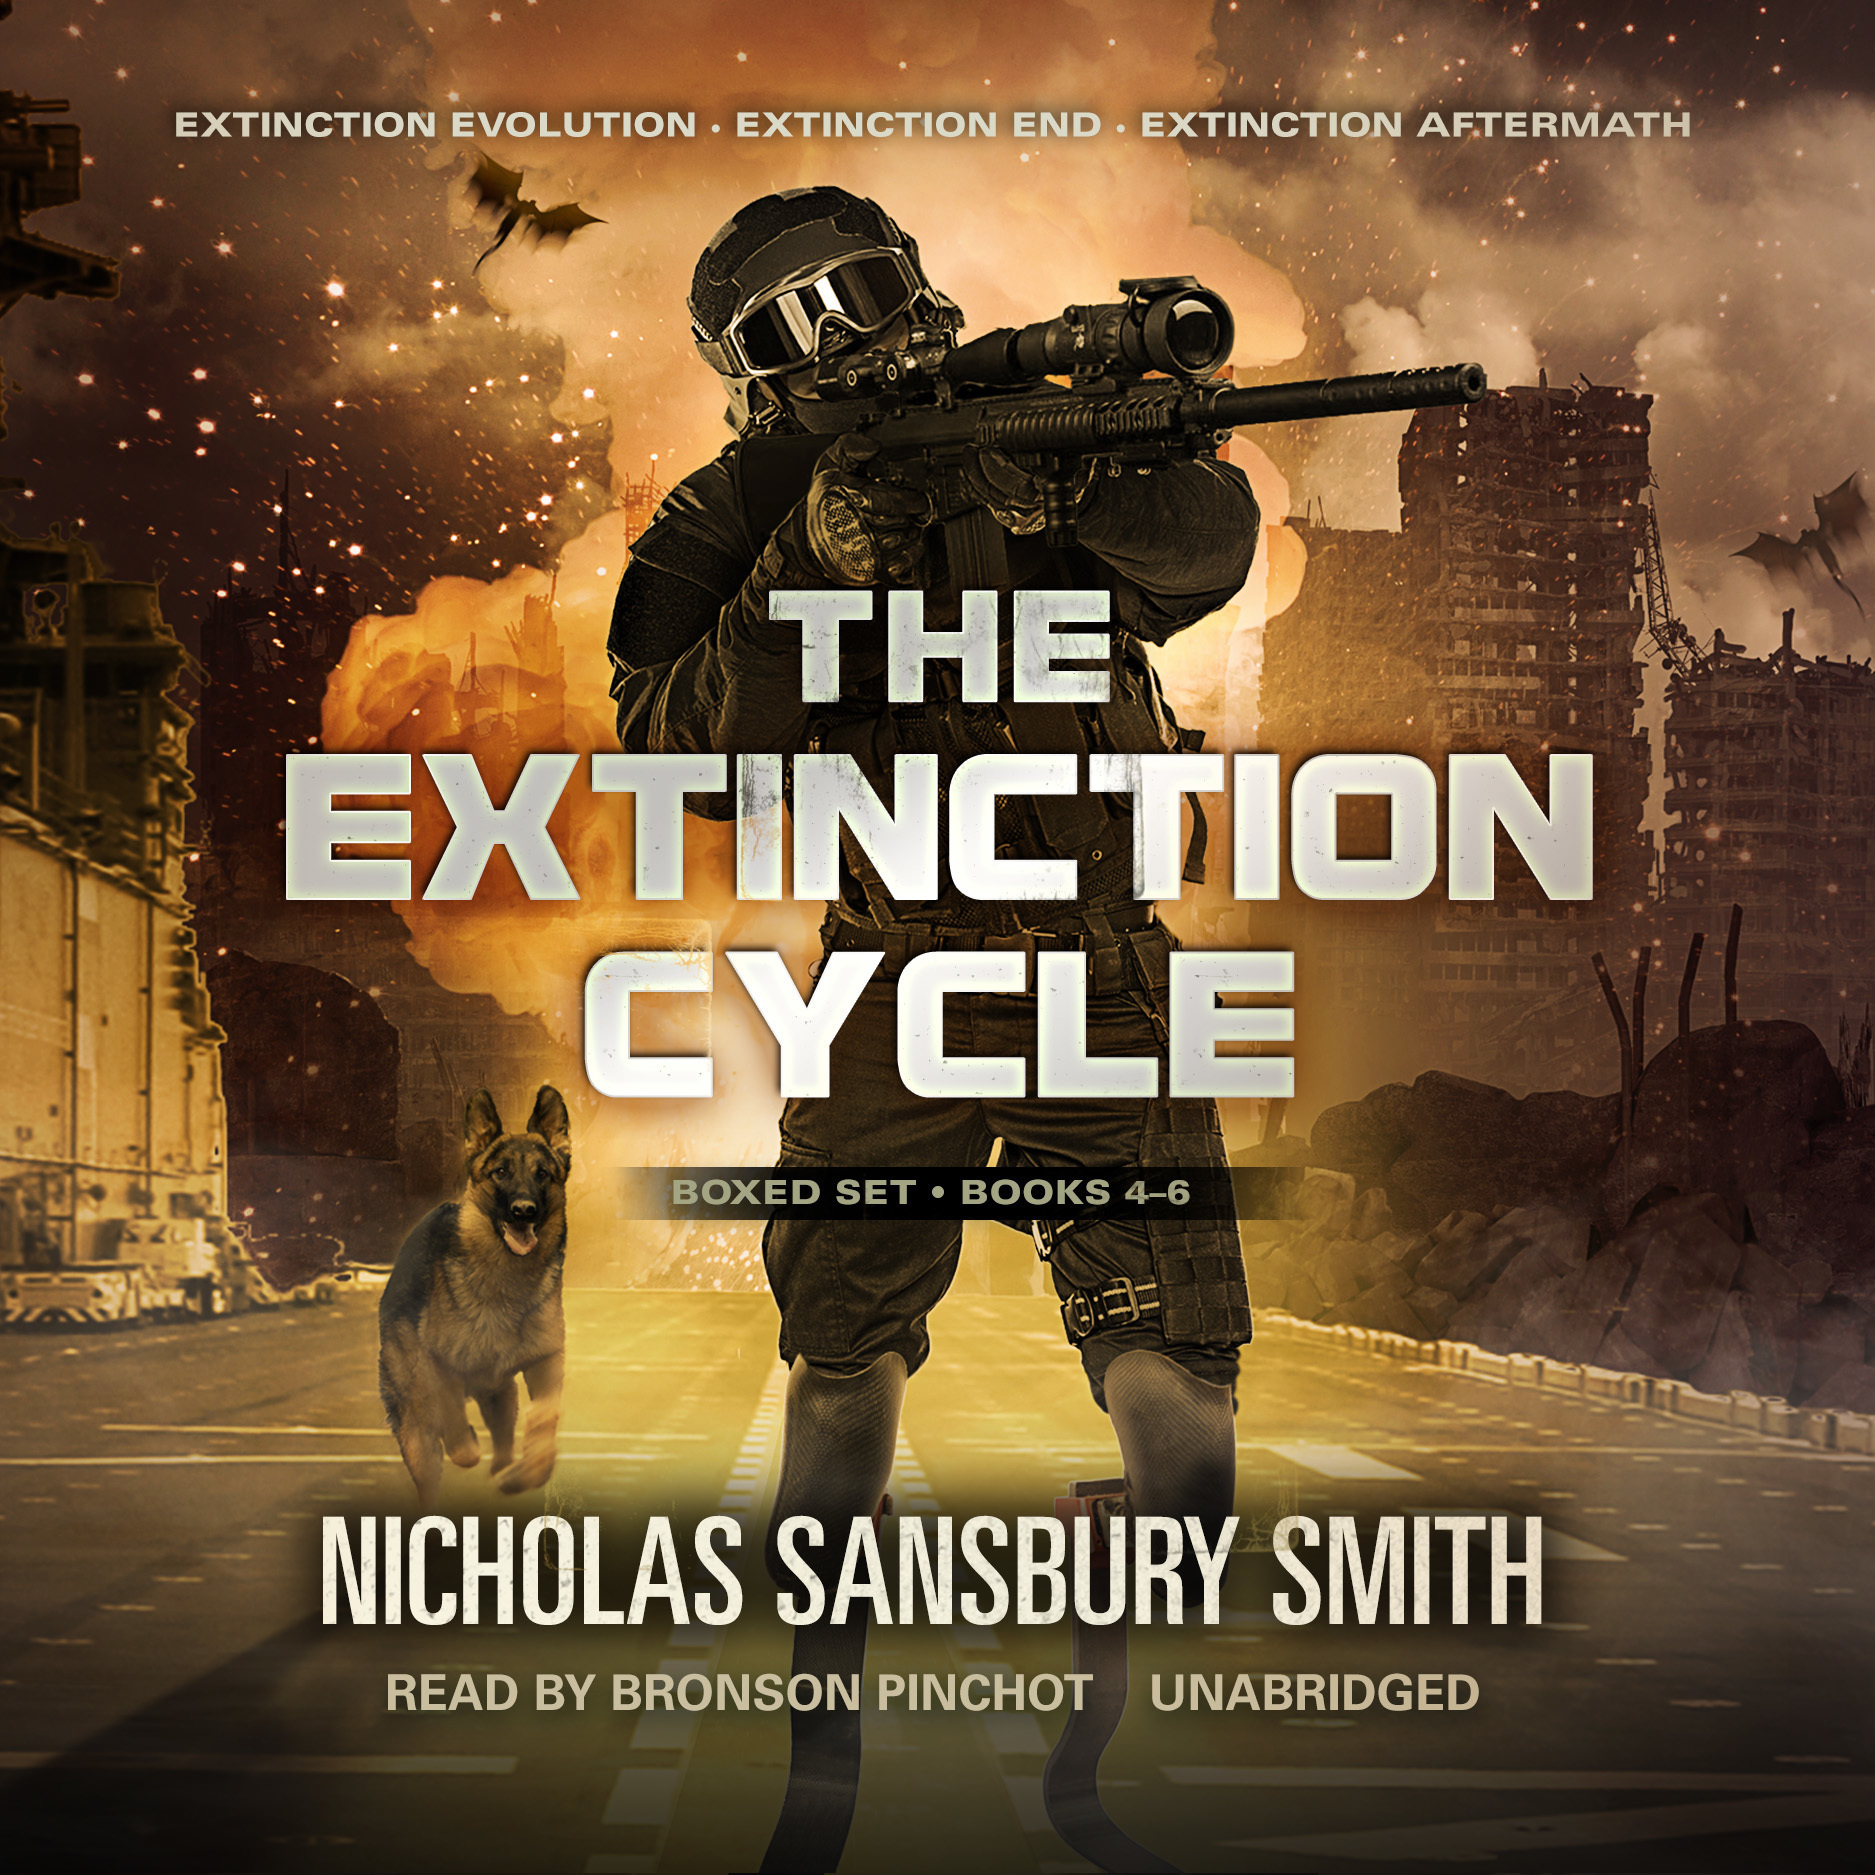 Printable The Extinction Cycle Boxed Set, Books 4–6: Extinction Evolution, Extinction End, and Extinction Aftermath Audiobook Cover Art